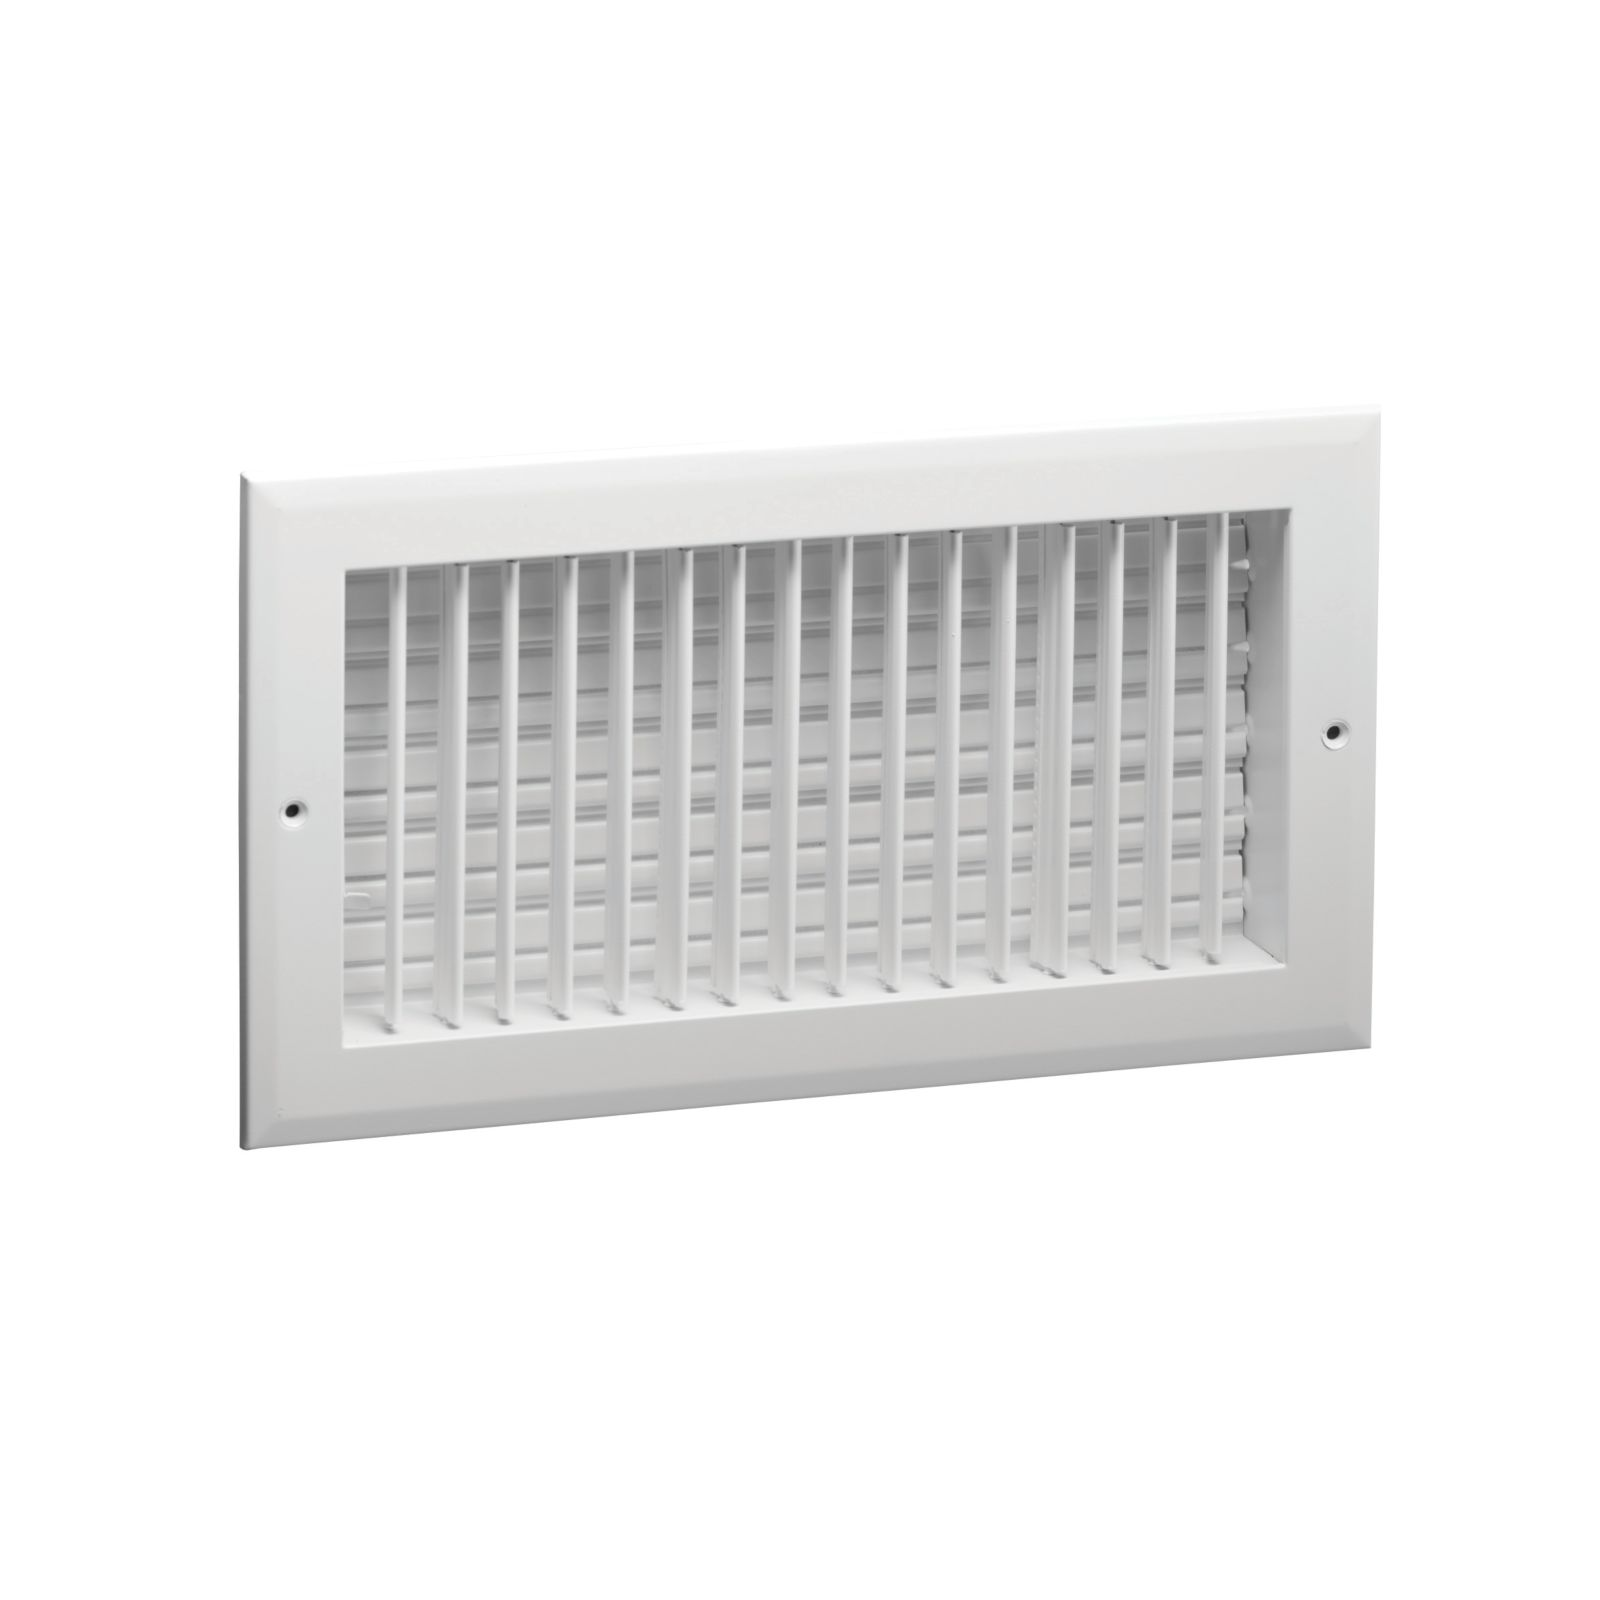 "Hart & Cooley 022443 - Aluminum Straight Blade 4-Way Sidewall/Ceiling Register, Multi-Shutter Damper, White Finish, 8"" X 6"""